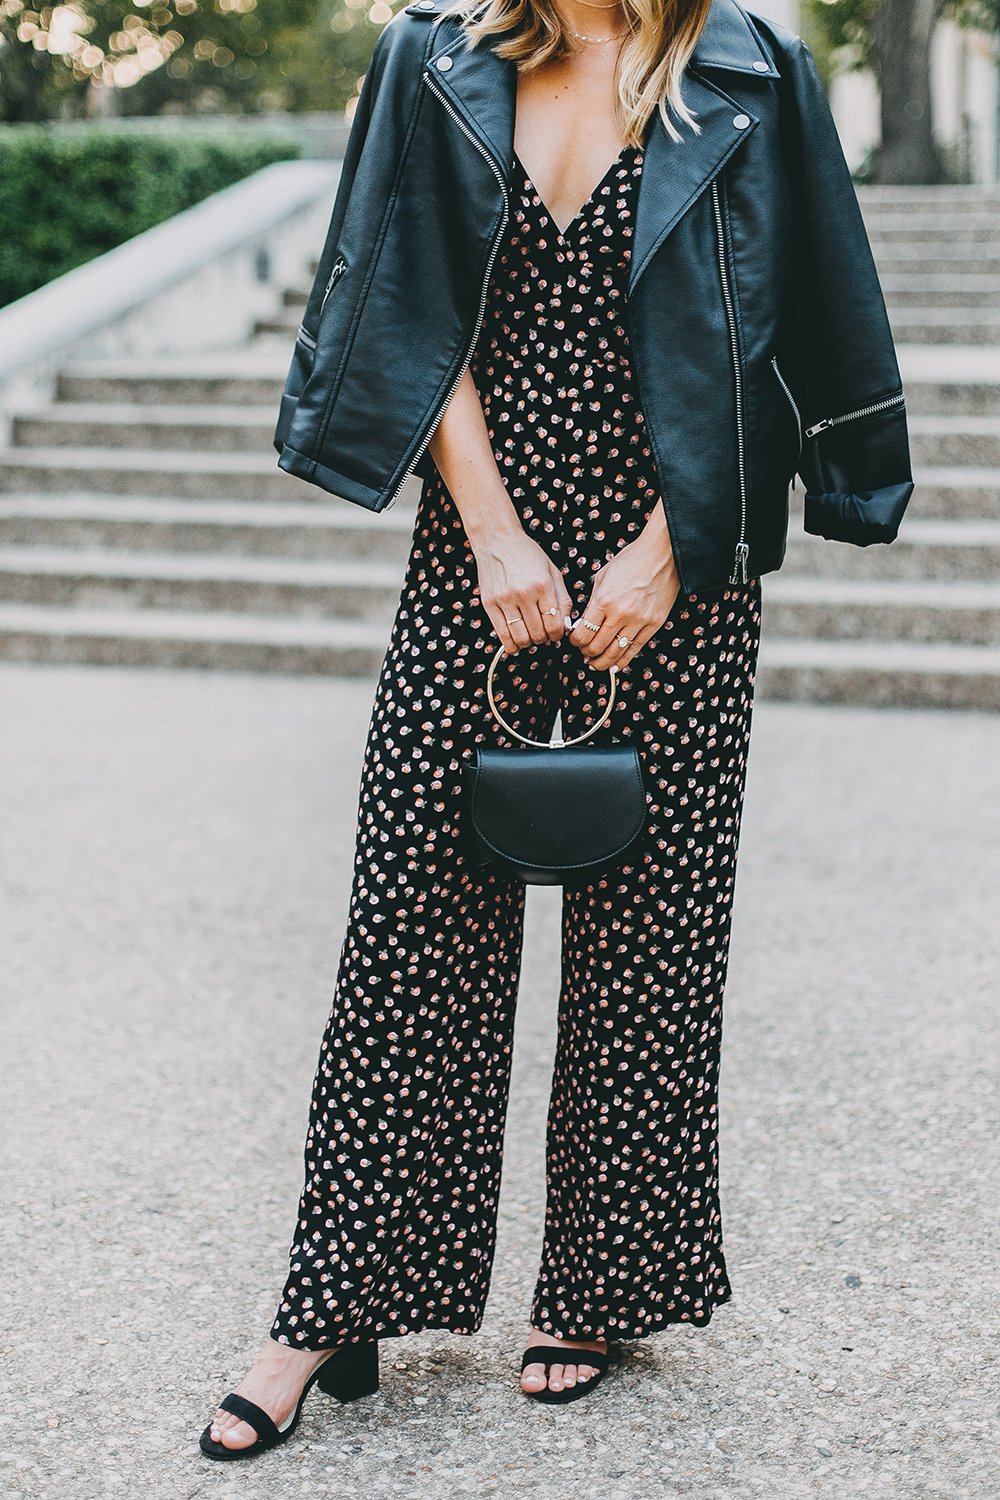 livvyland-blog-olivia-watson-austin-texas-fashion-blogger-floral-jumpsuit-free-people-black-leather-jacket-11